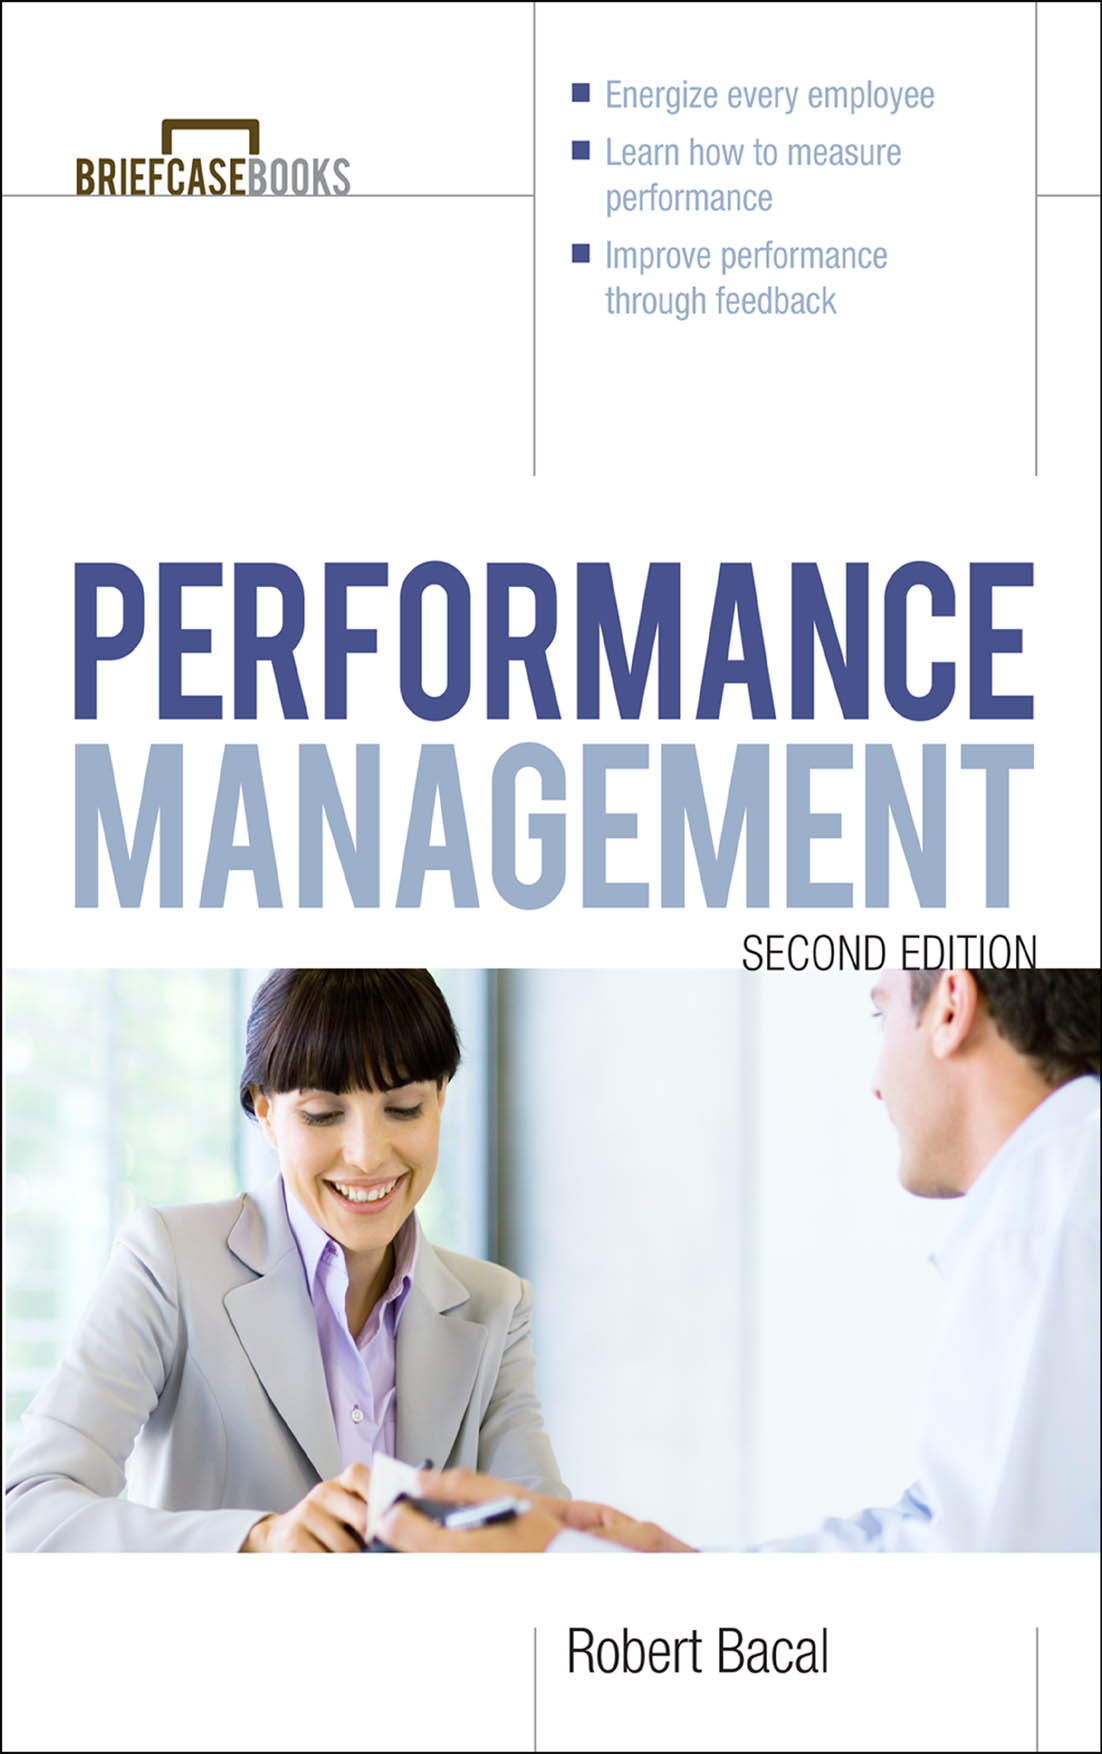 Download Ebook Performance Management 2/E (2nd ed.) by Robert Bacal Pdf